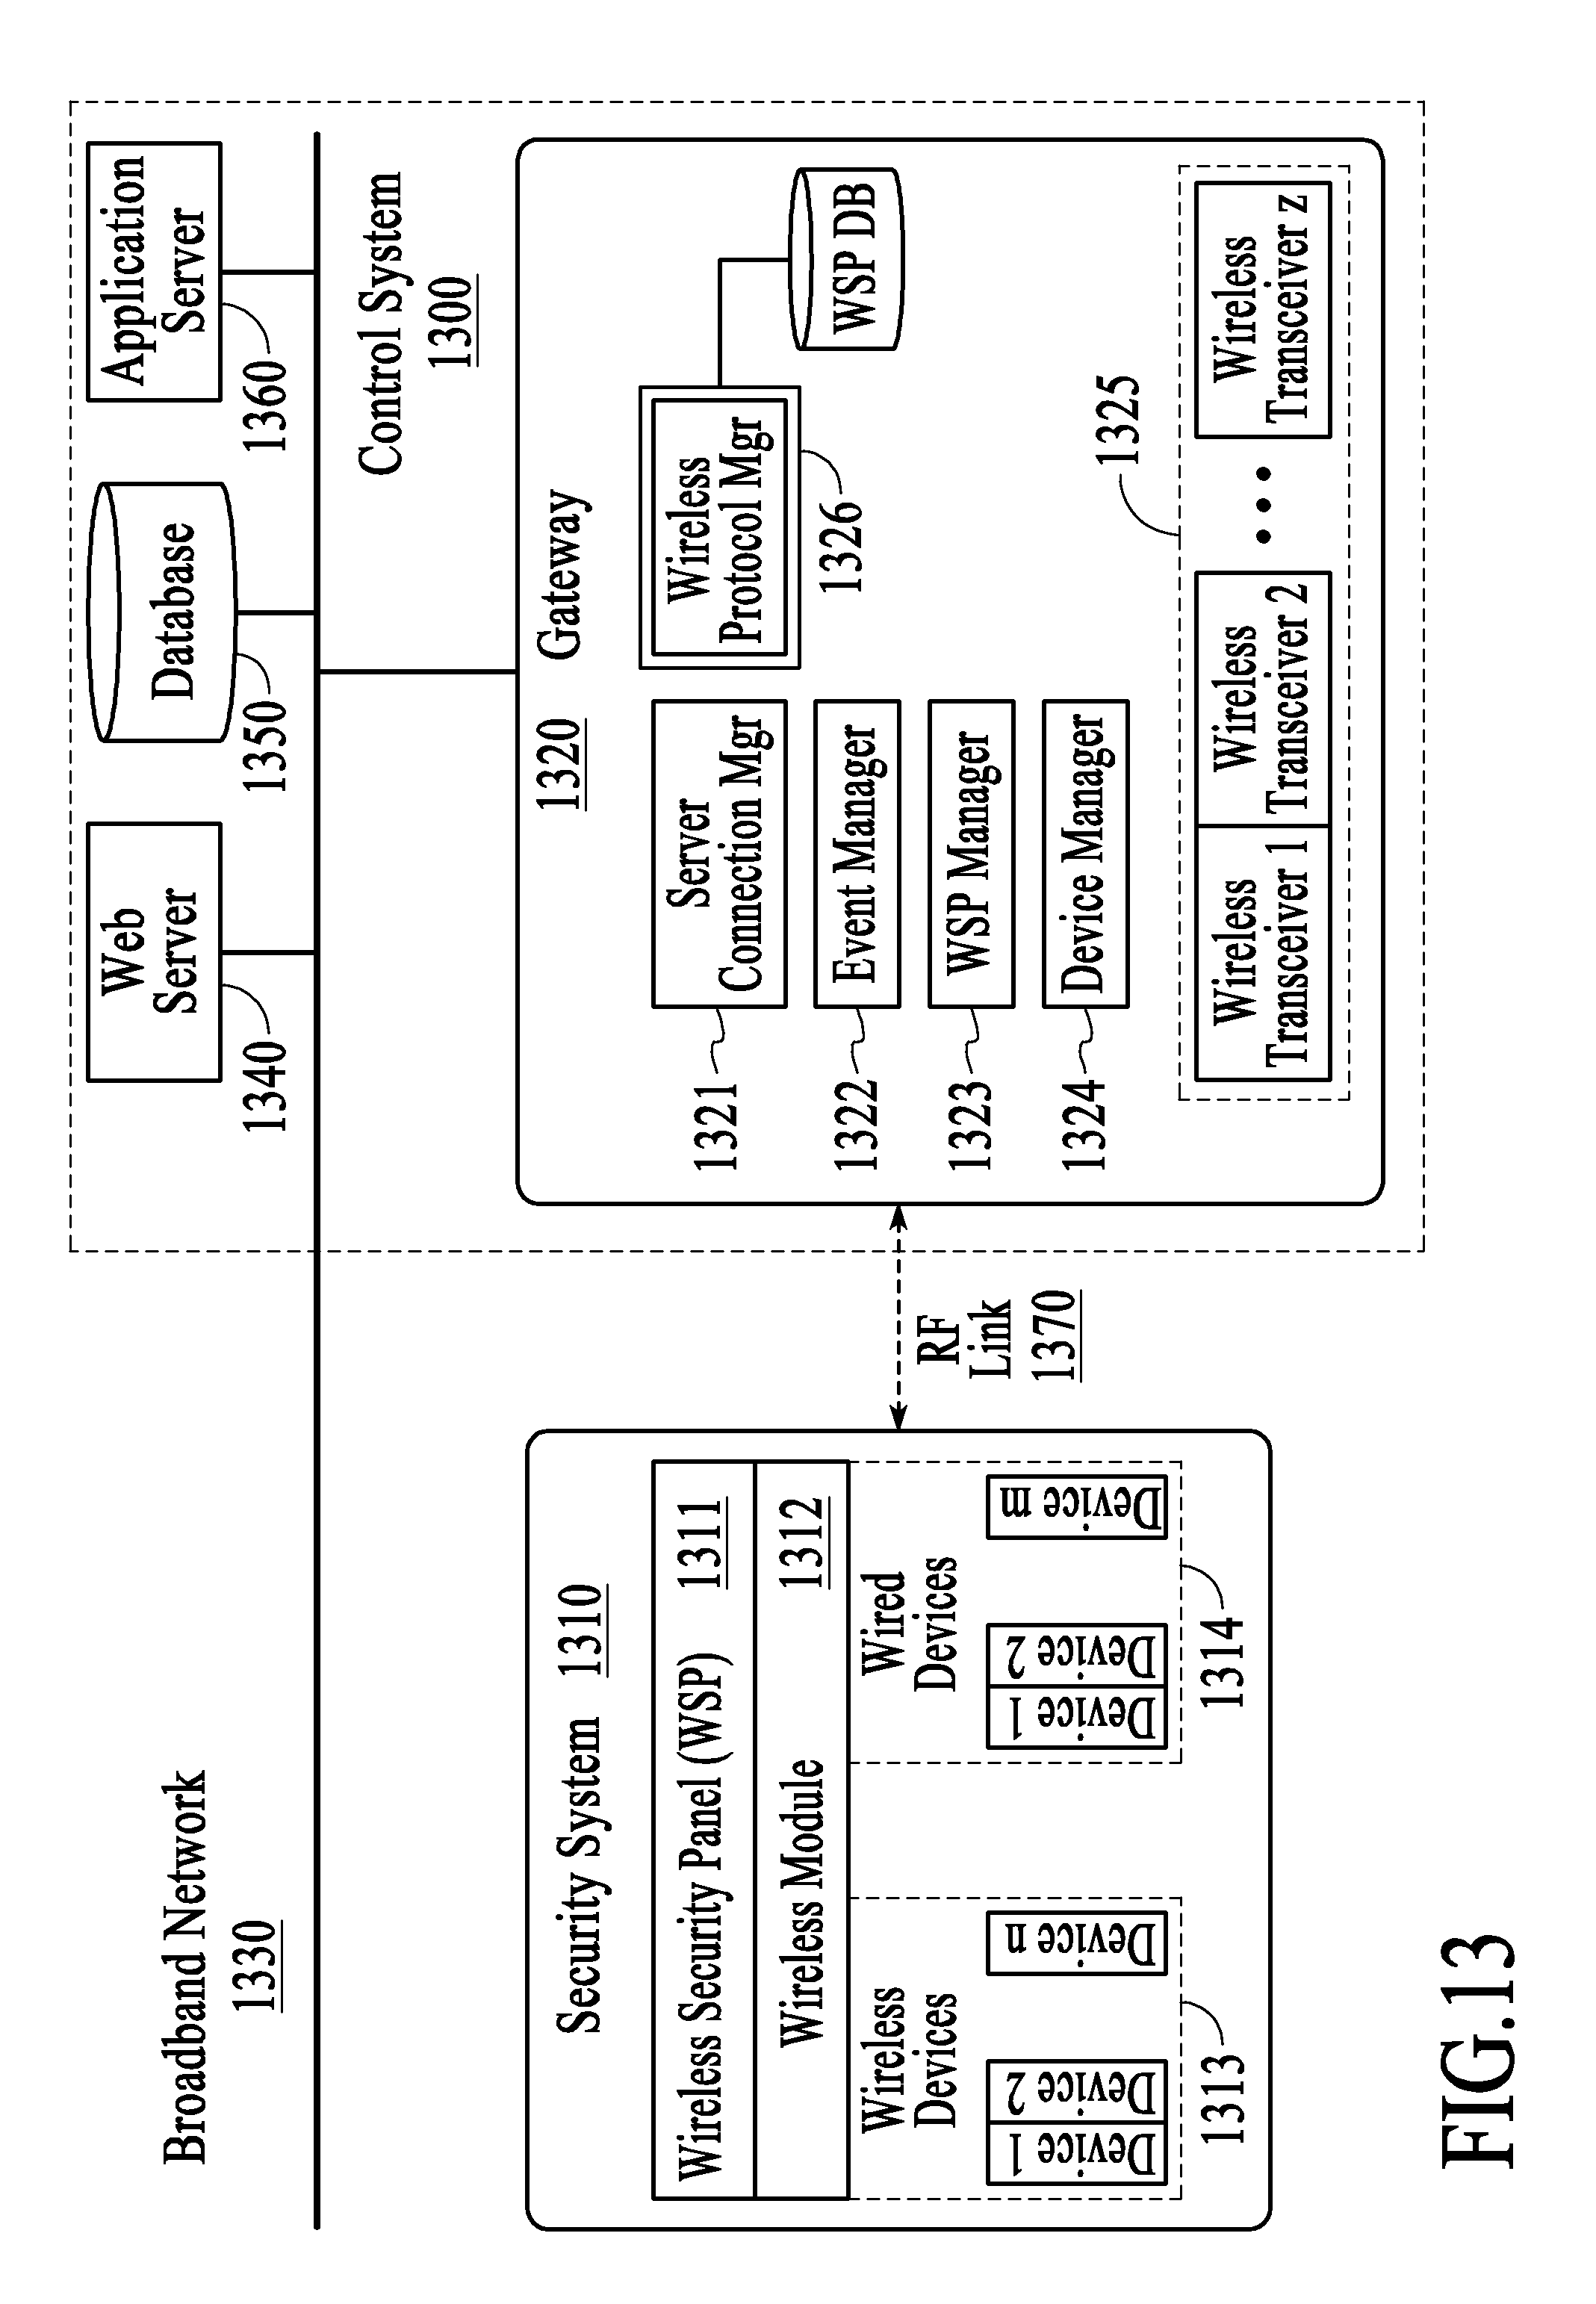 US9450776B2 - Forming a security network including